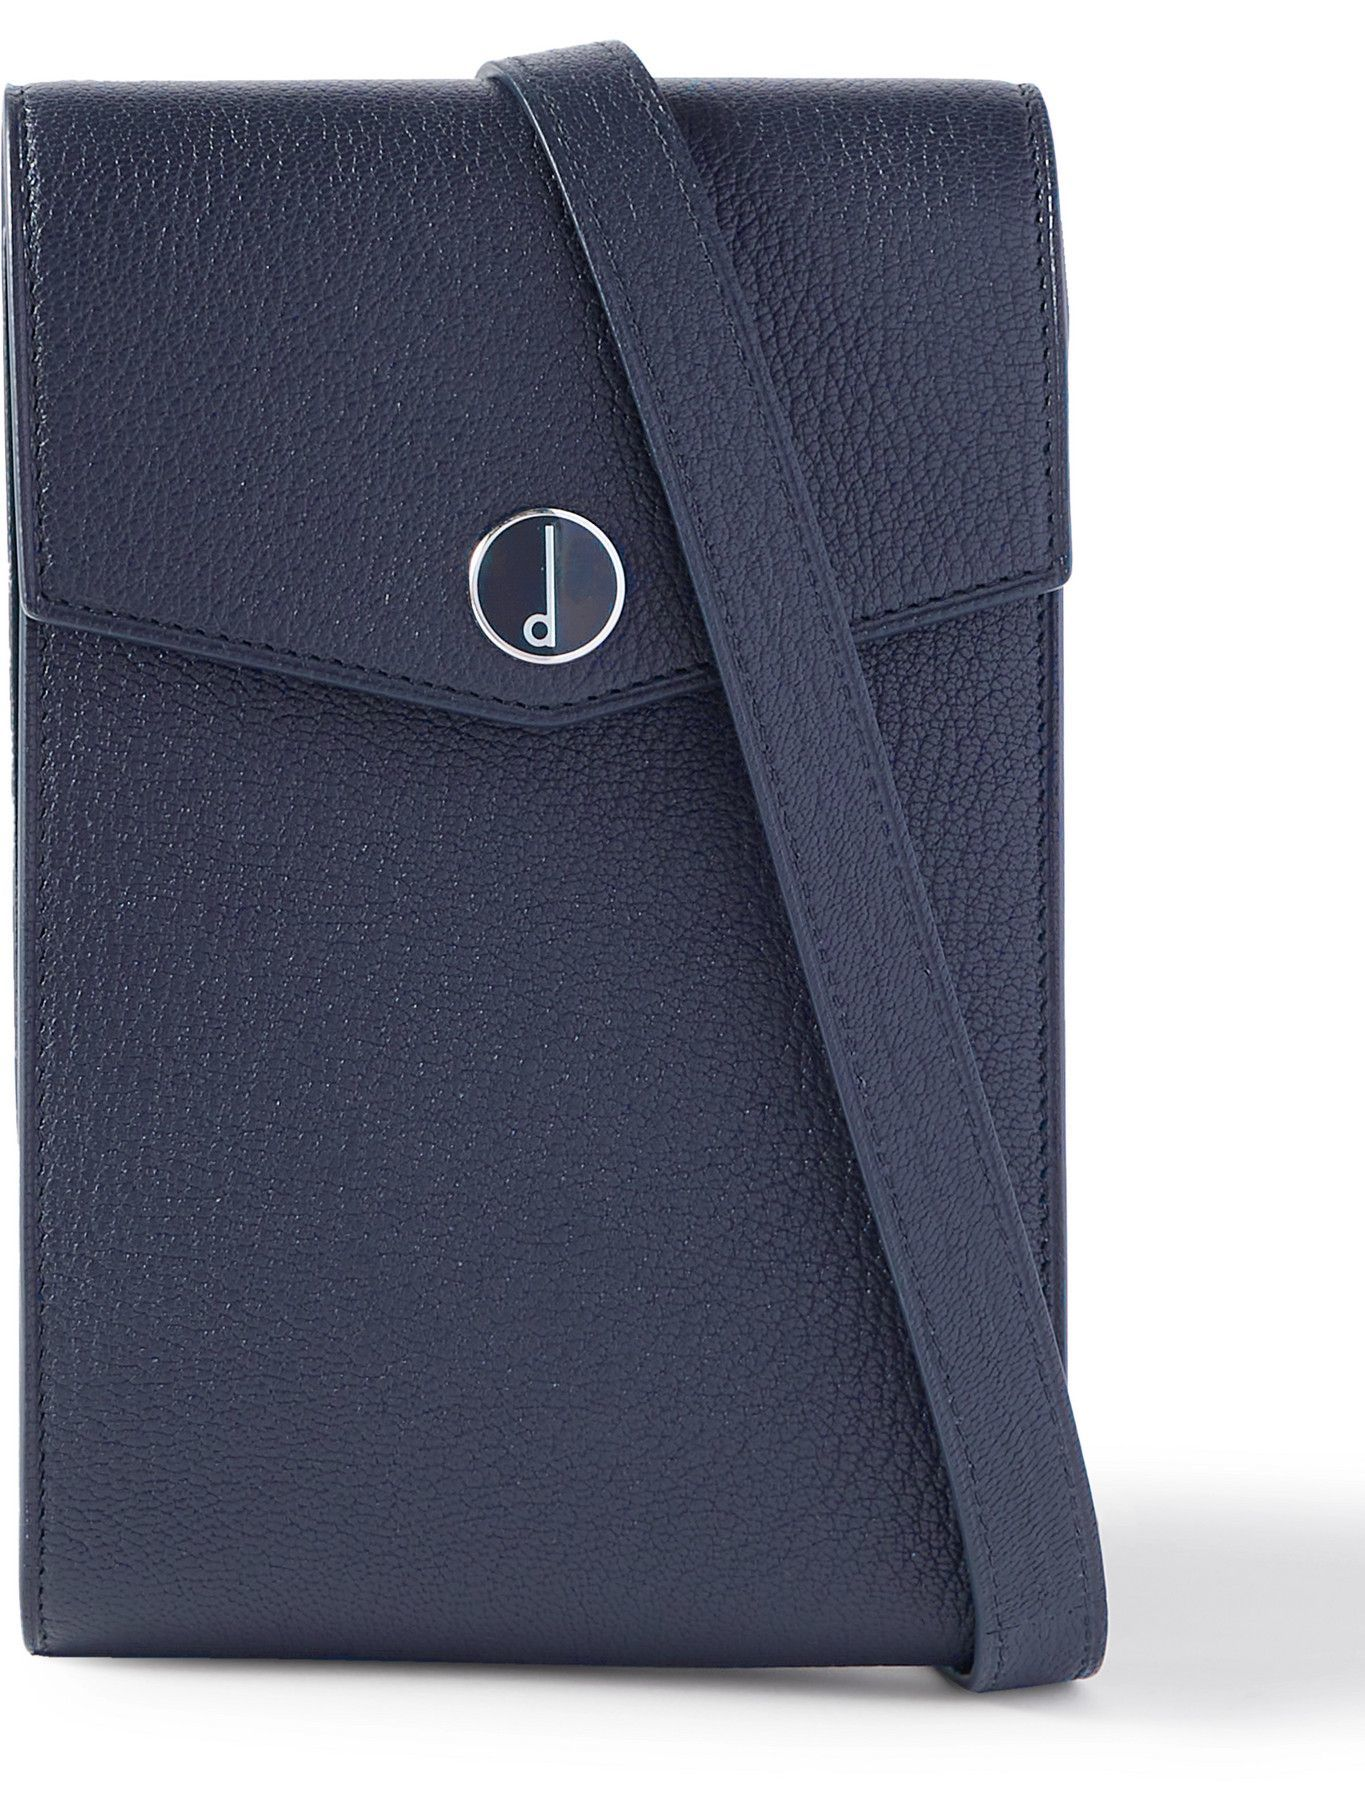 DUNHILL - Logo-Detailed Full-Grain Leather Pouch